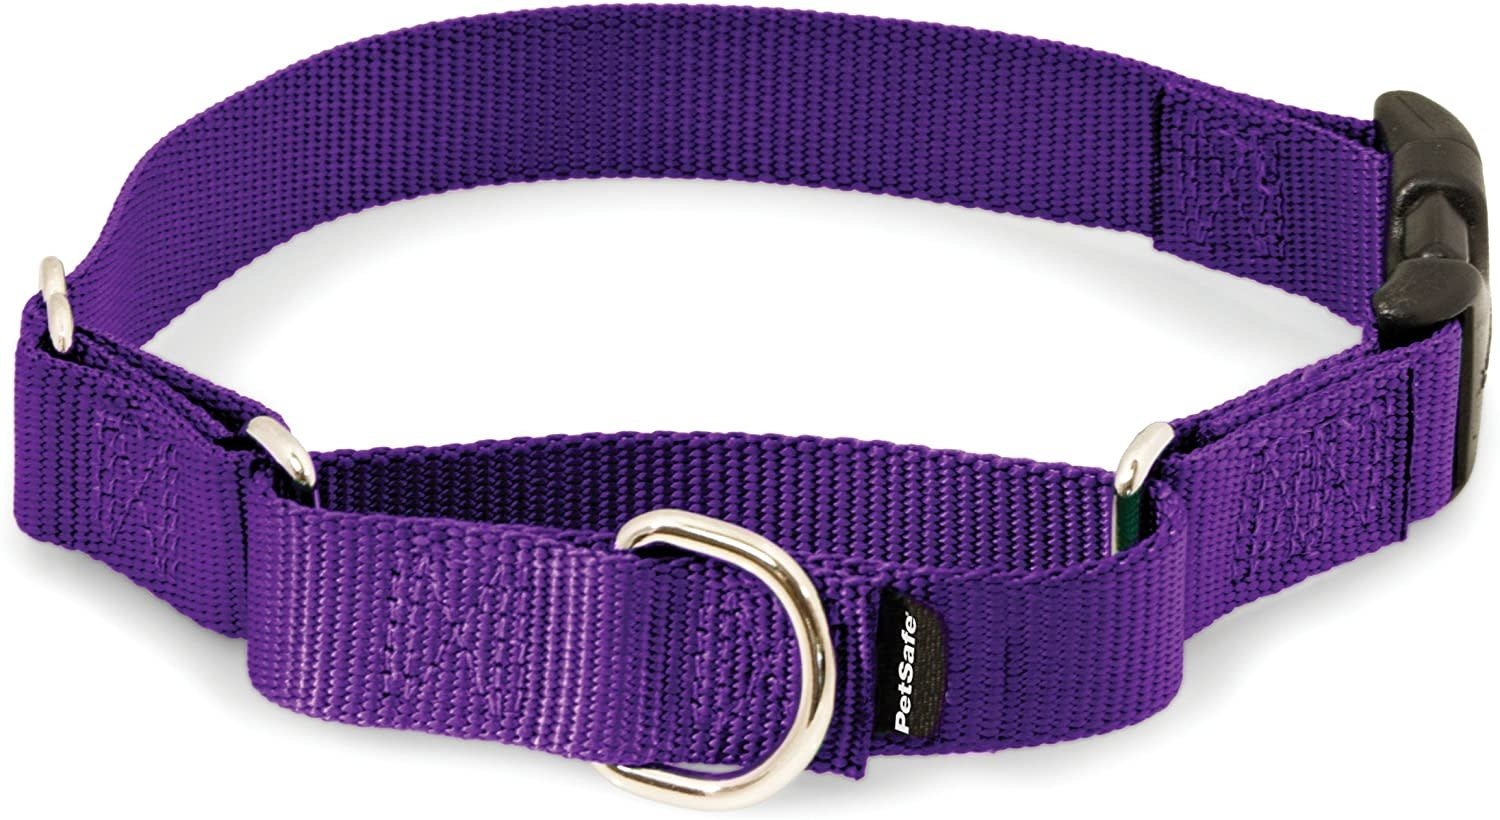 Petsafe- General Petsafe Martingale Collar Purple Small